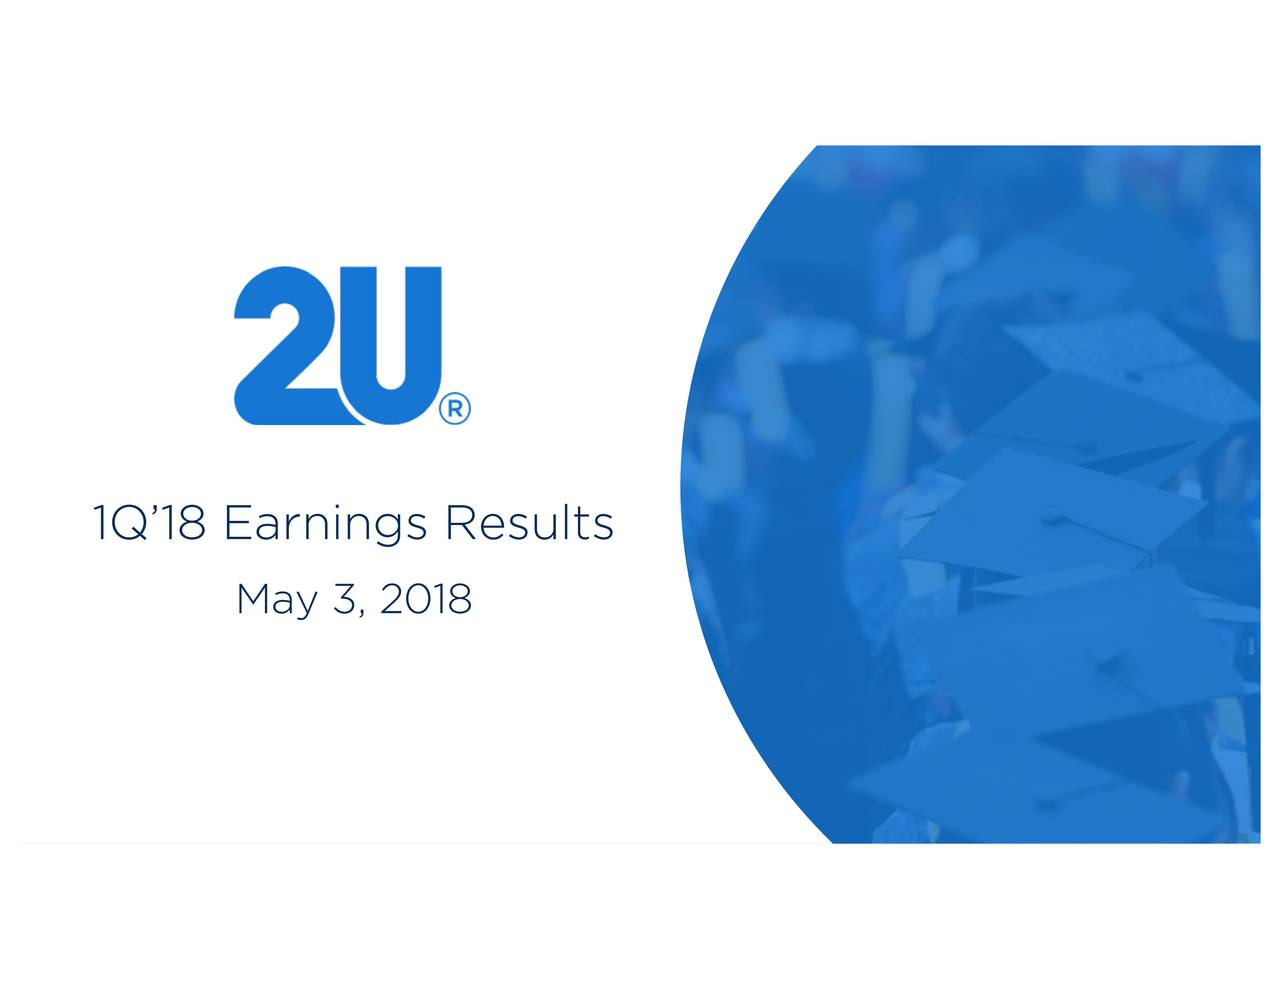 1Q'18 Earnings Results